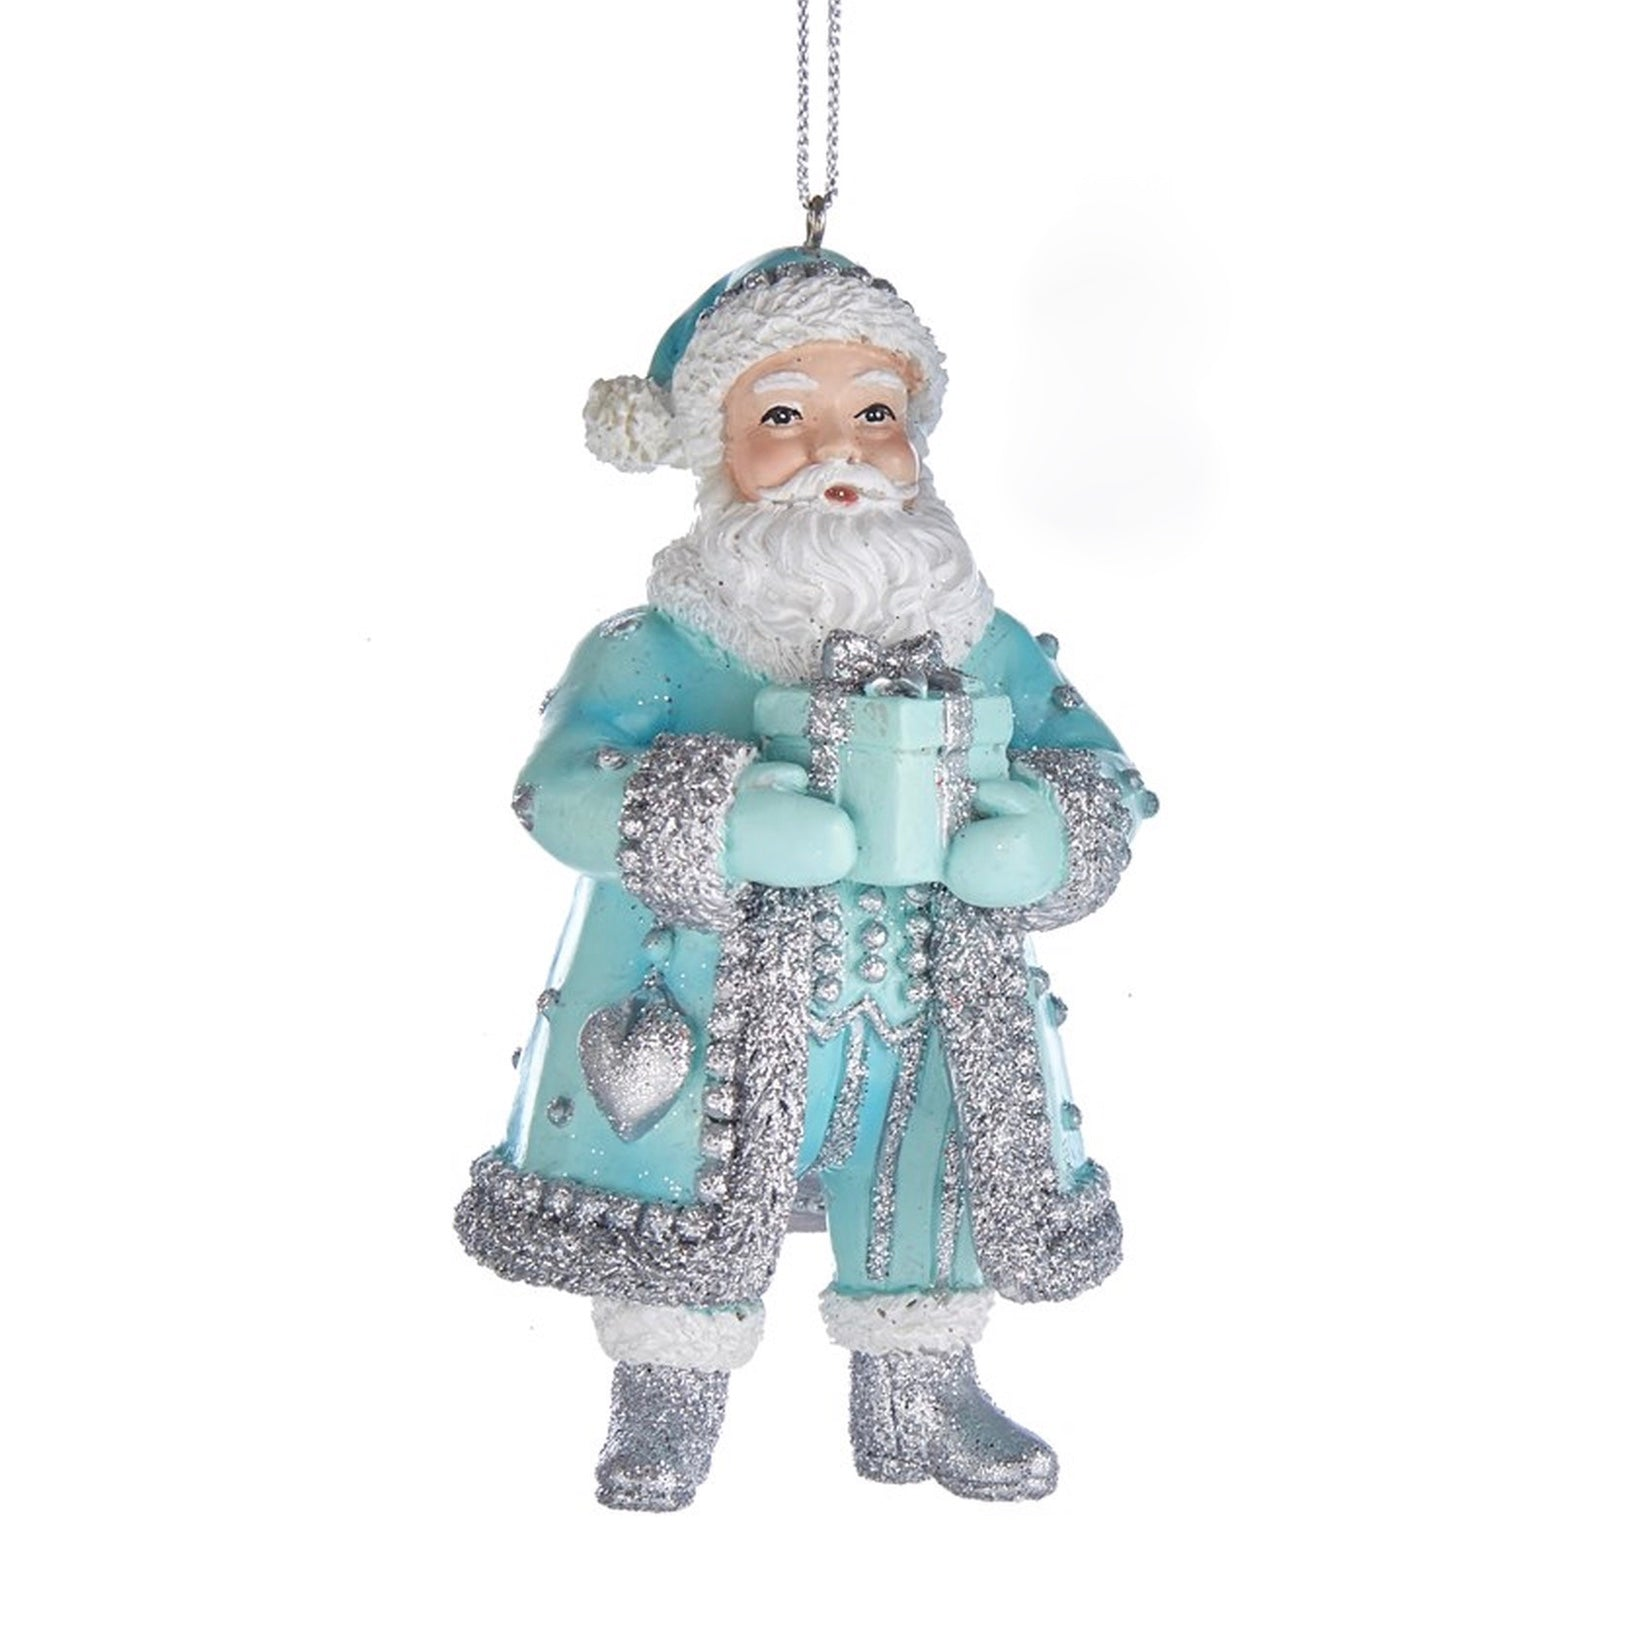 Kurt Adler Tiffany Blue and Silver Santa Ornament | Putti Christmas